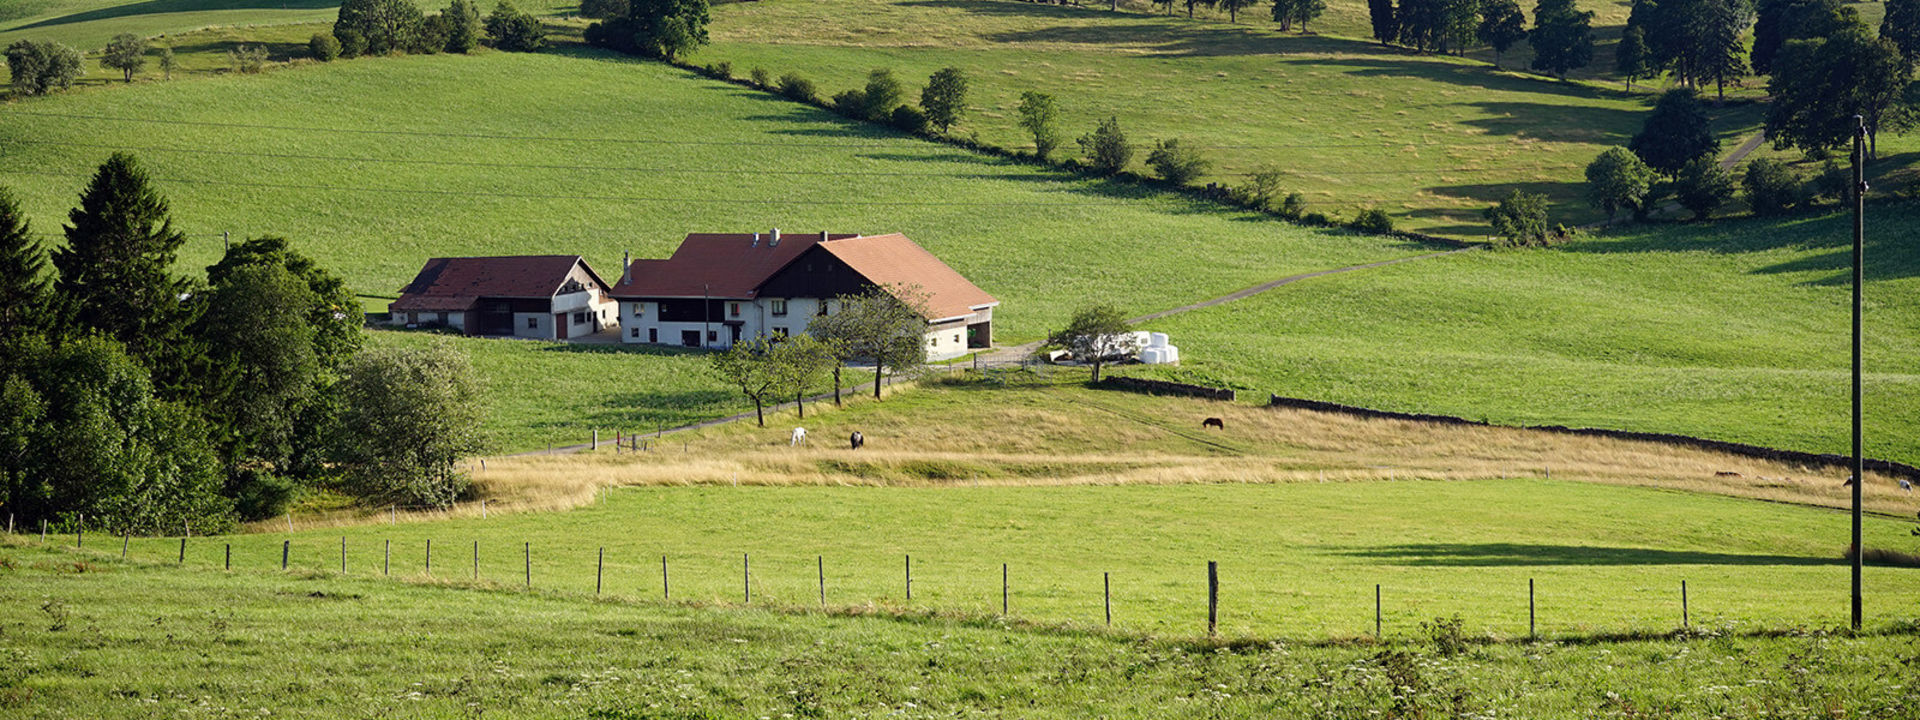 5 Tips for Selling Your Farm or Rance